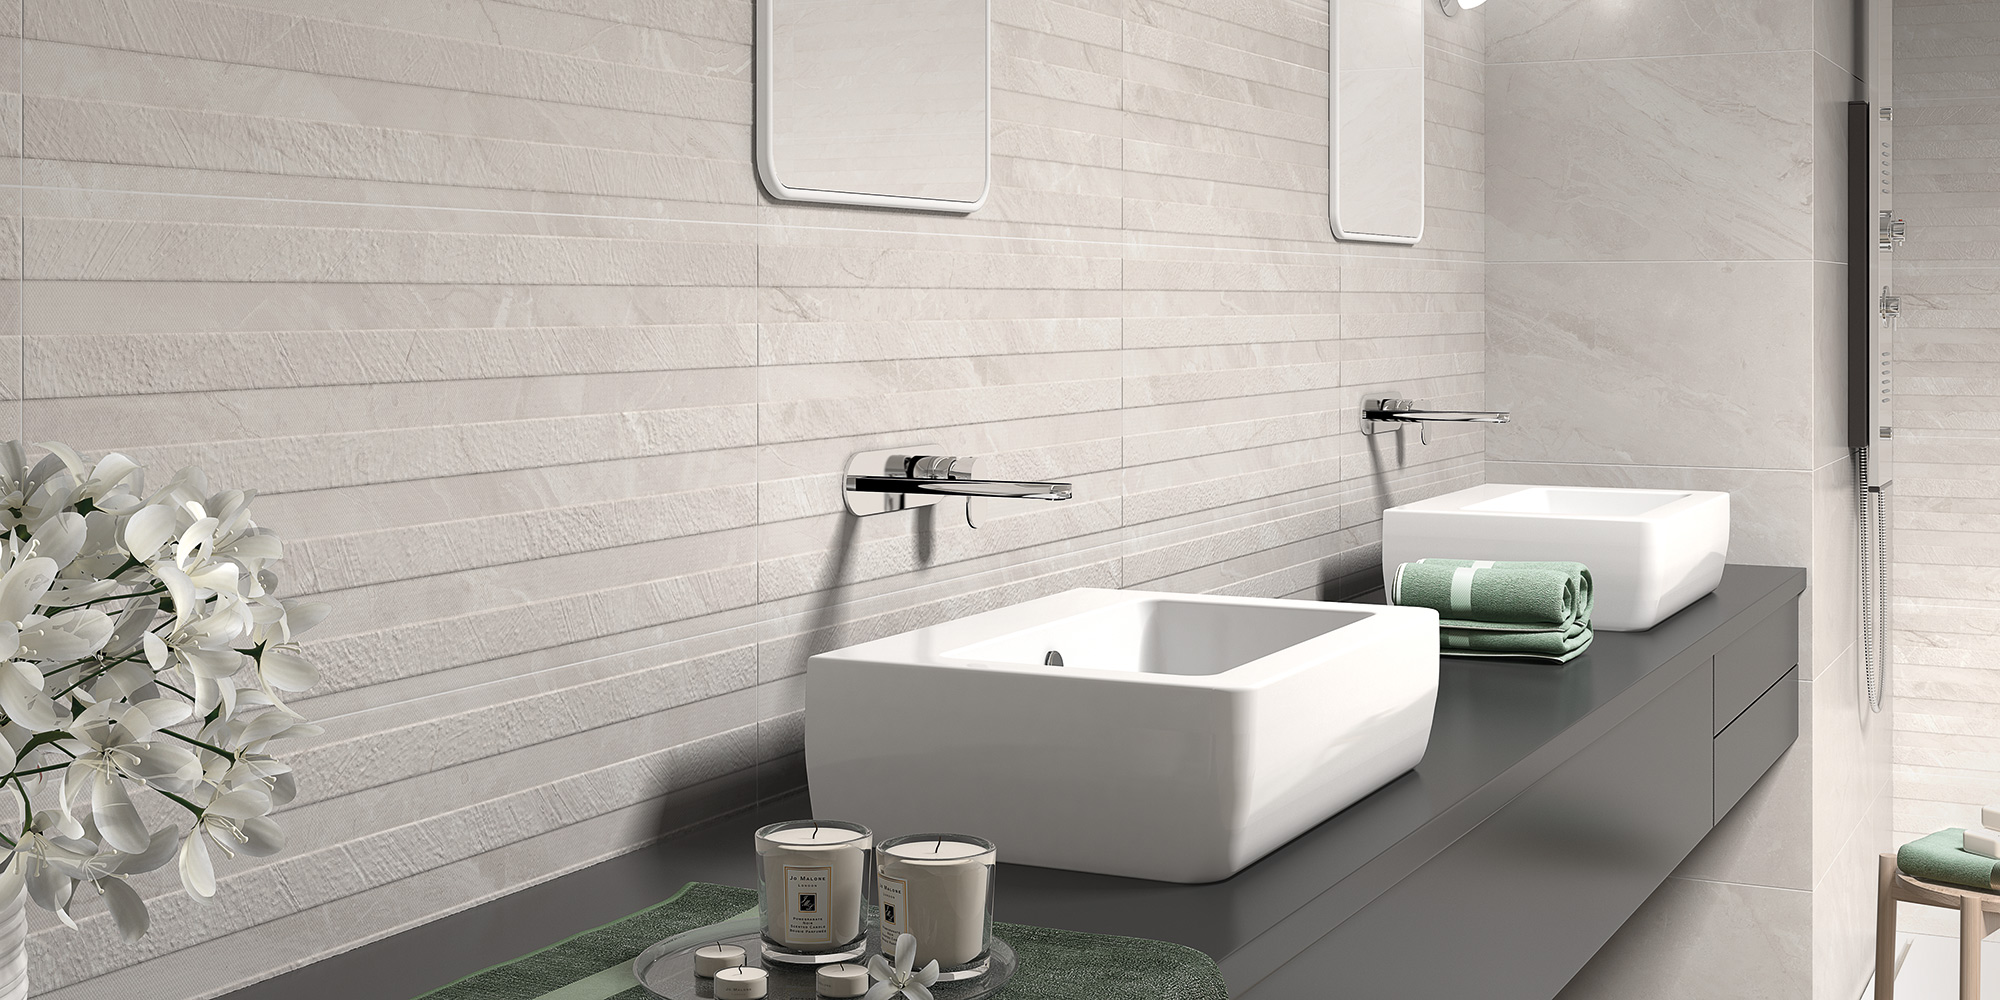 Ersa 36x80 / 45x45. Large format marble look tiles for bathroom walls and floors.